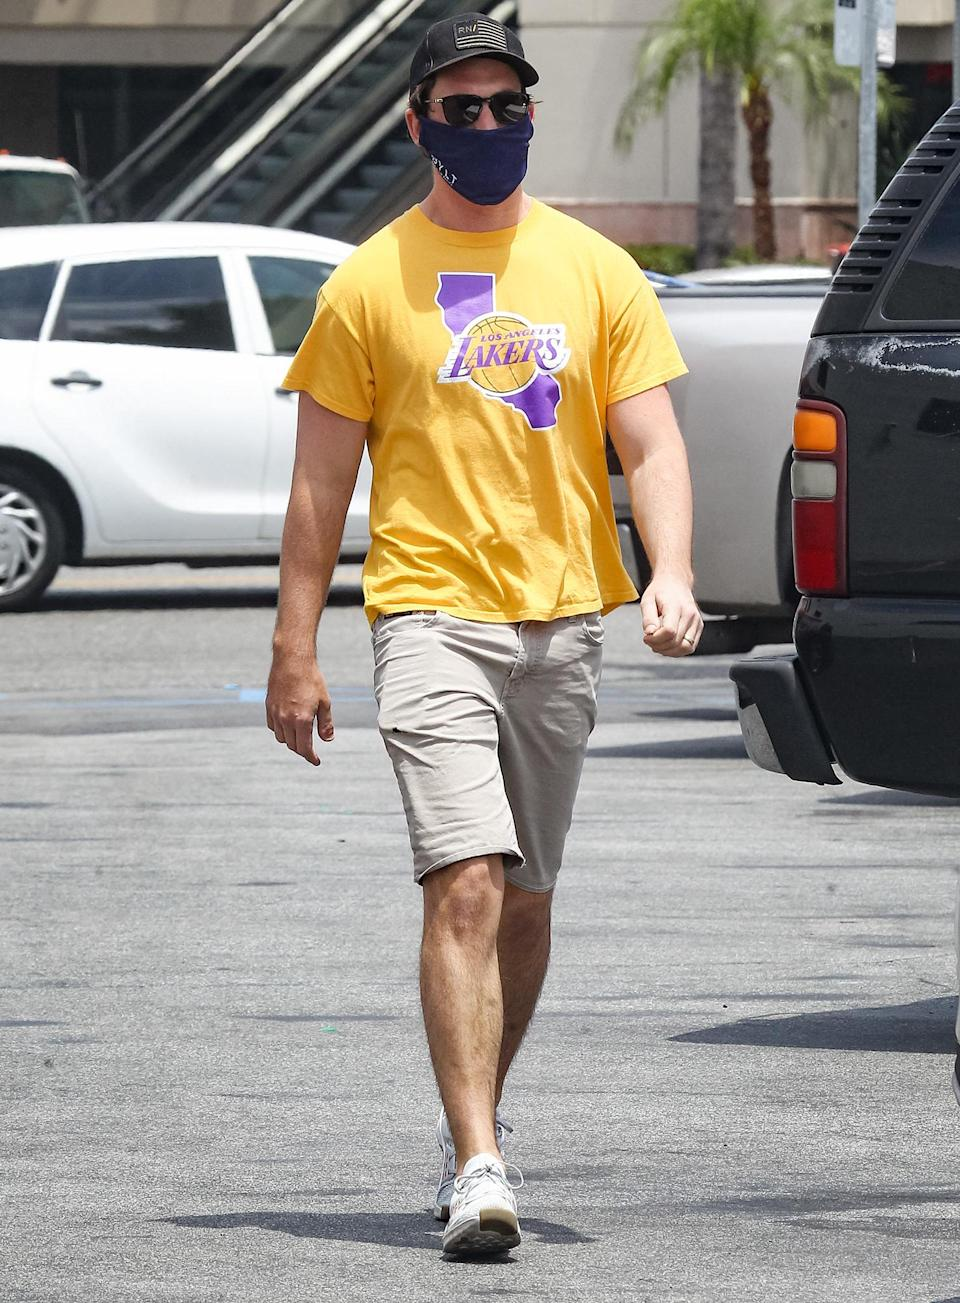 <p>Miles Teller dons a mask and Lakers tee for an errand run in Los Angeles on Thursday.</p>